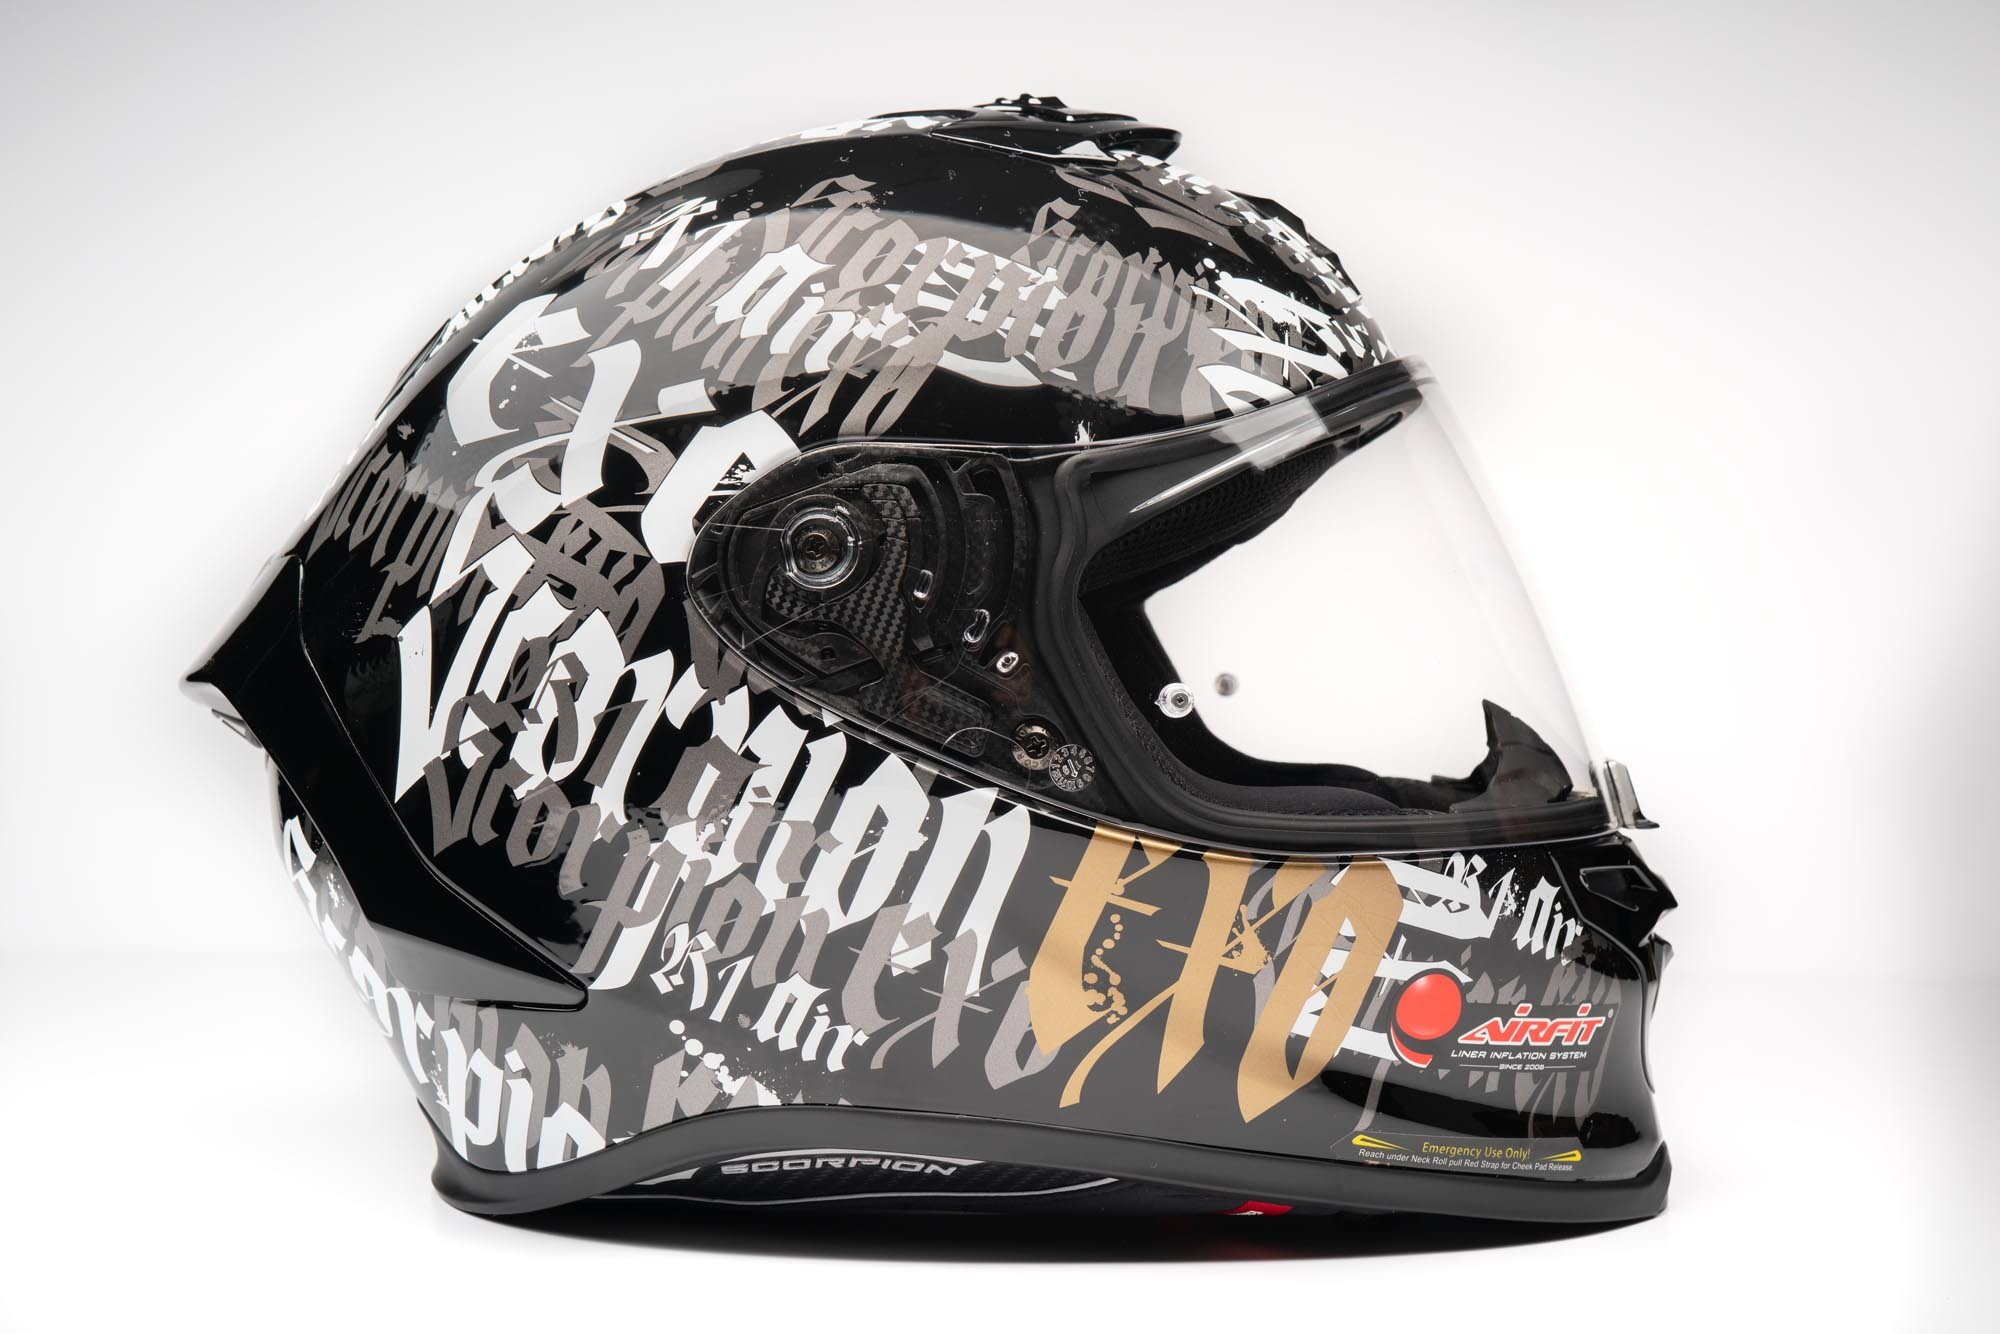 Side view of Scorpion EXO R1 helmet with decals